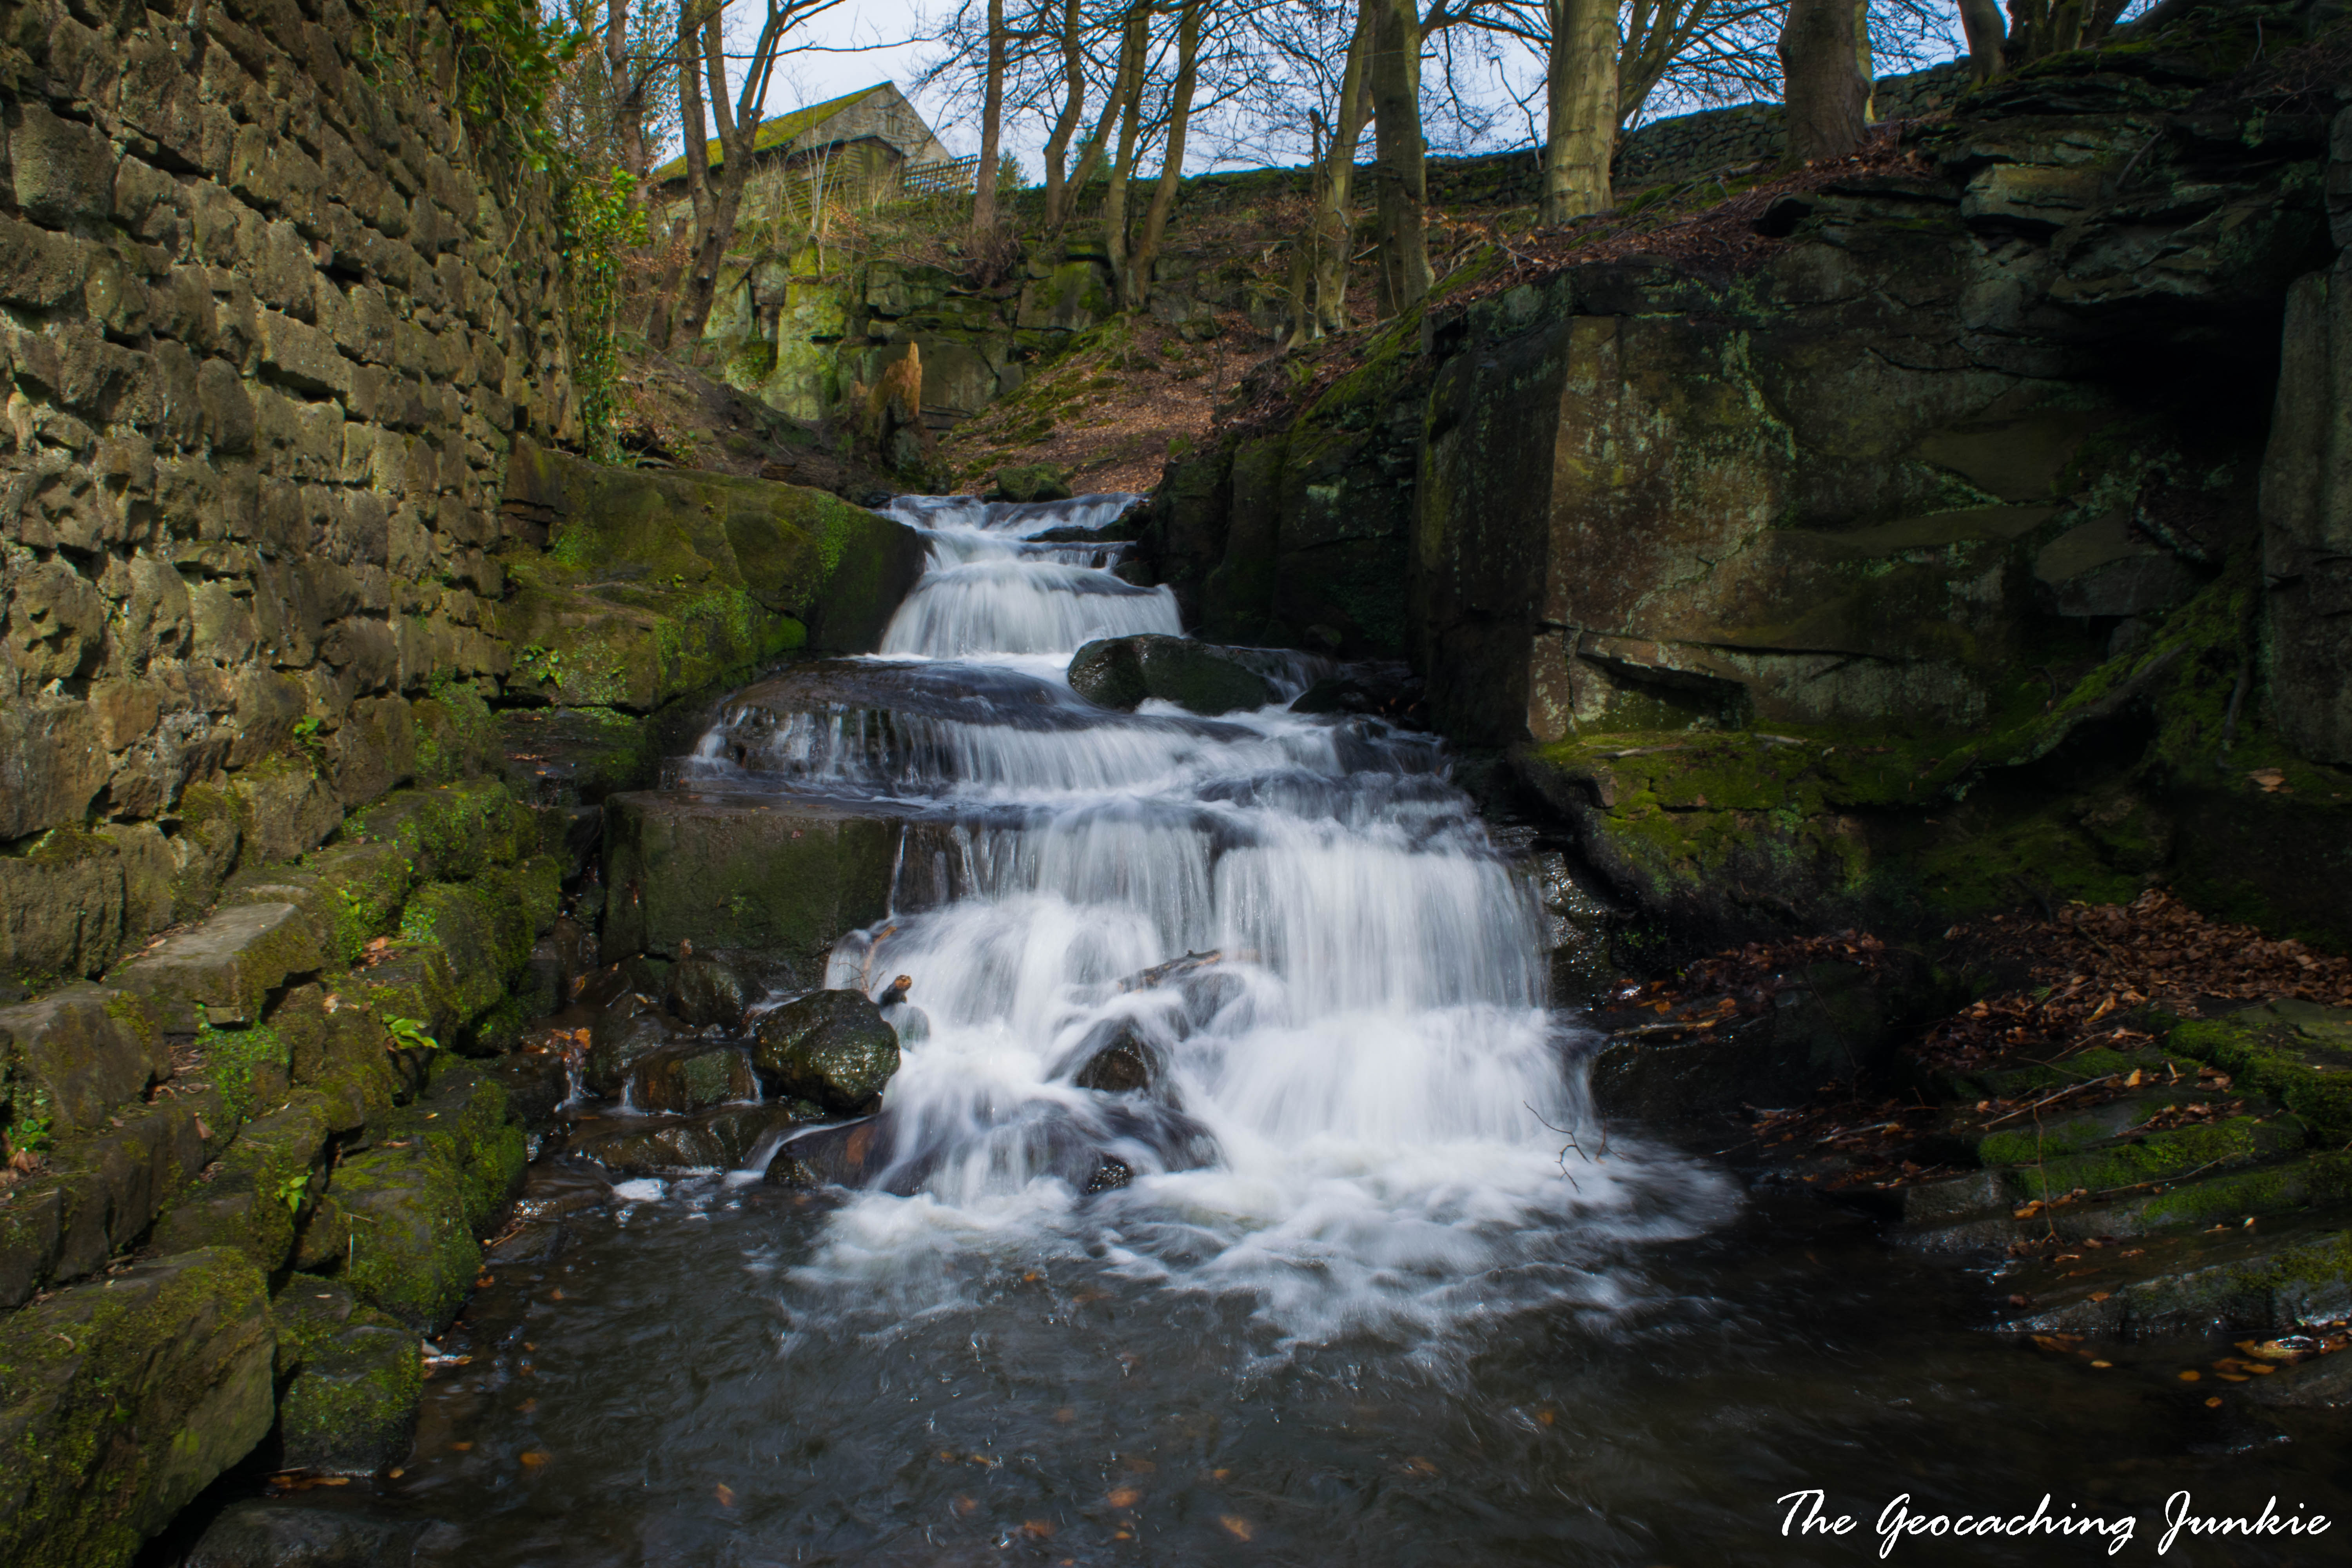 The Geocaching Junkie: Lumsdale Valley, Derbyshire